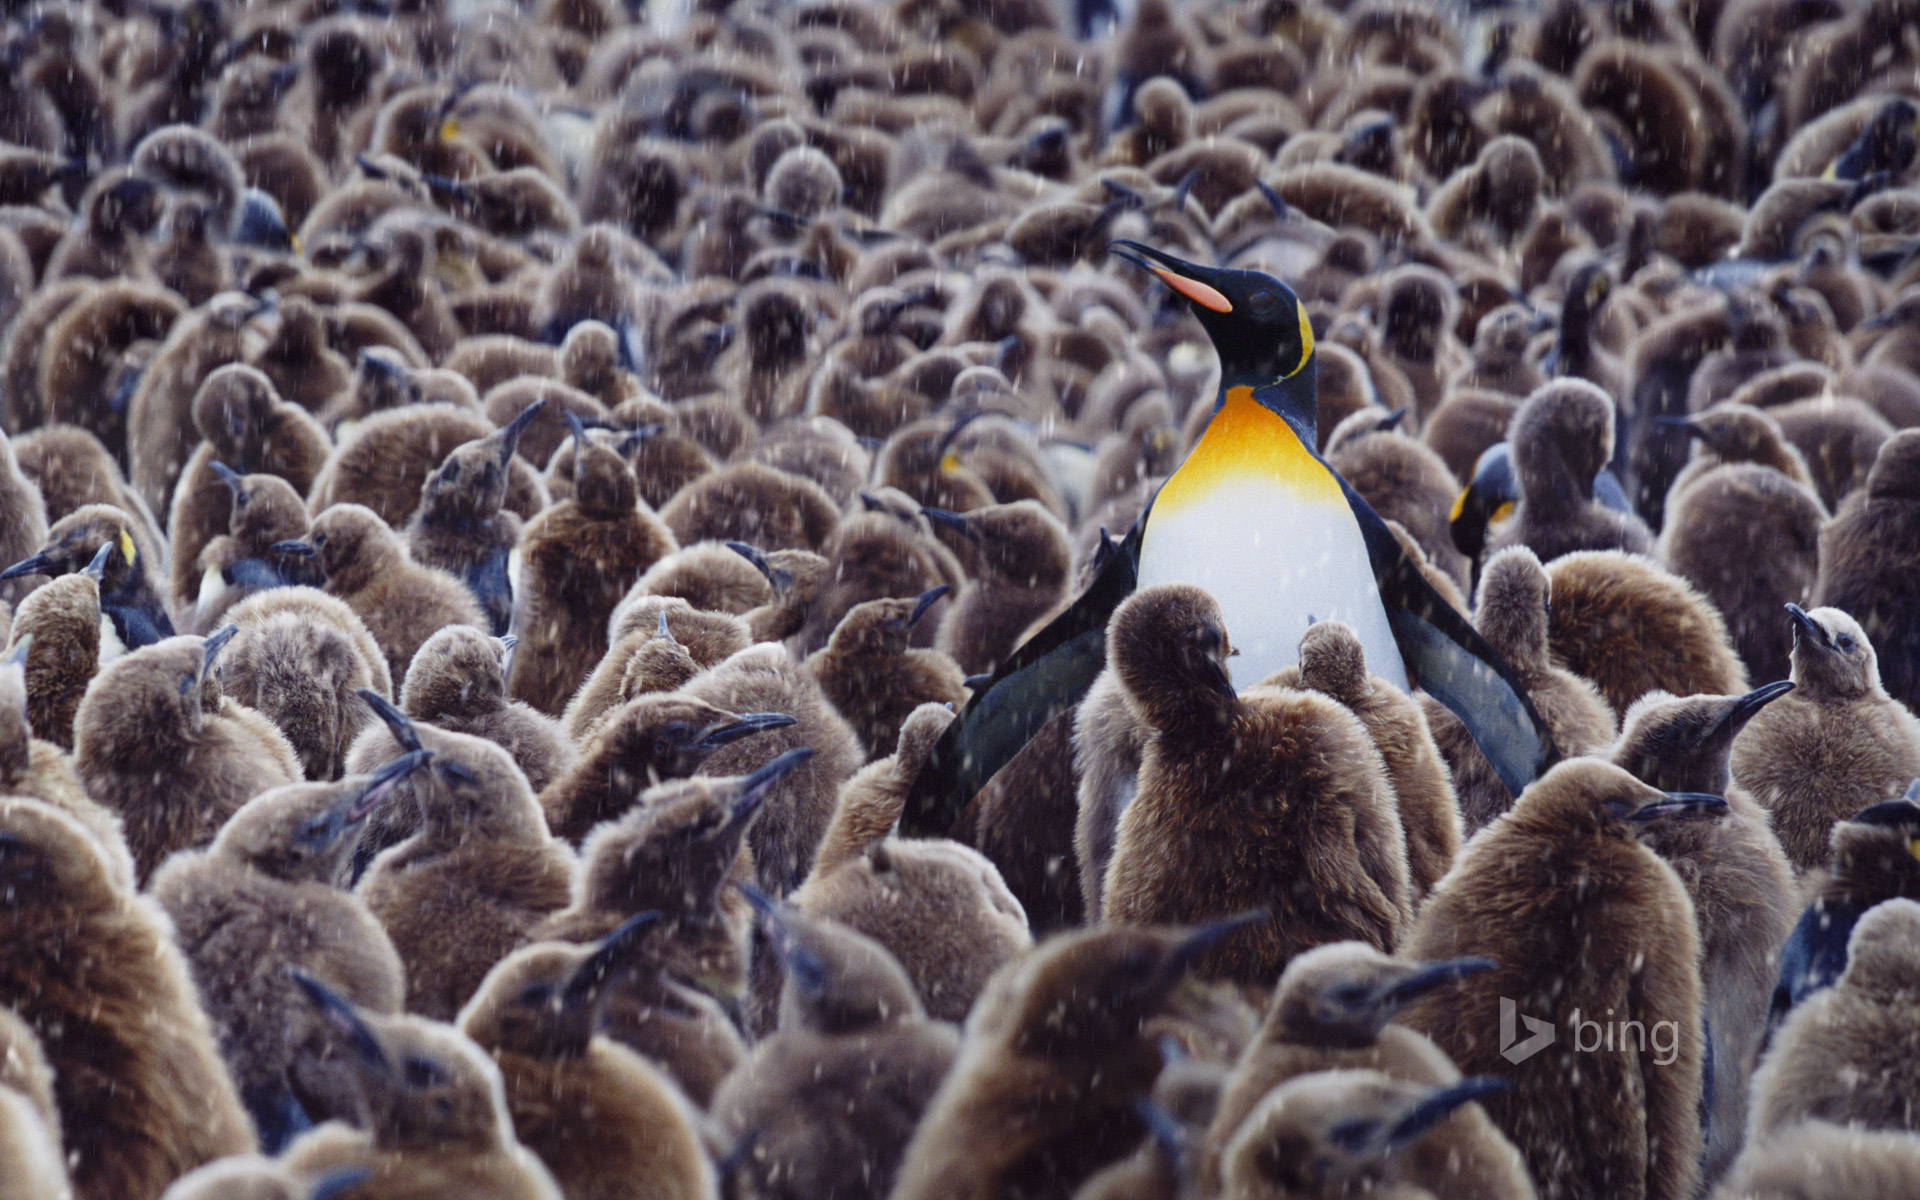 King penguin surrounded by chicks, South Georgia